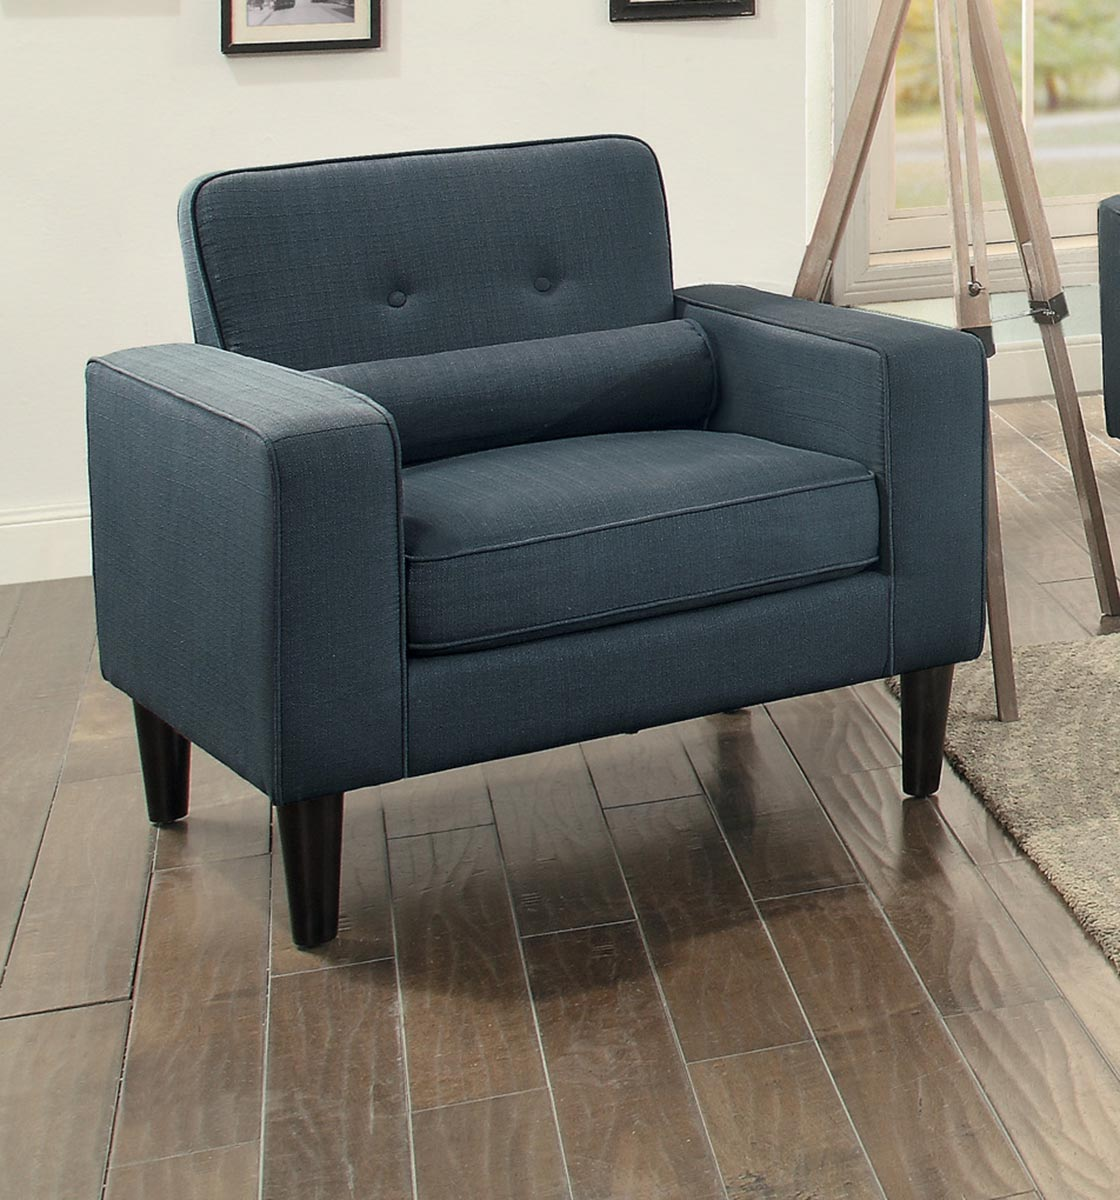 Homelegance Corso Chair - Dark Gray